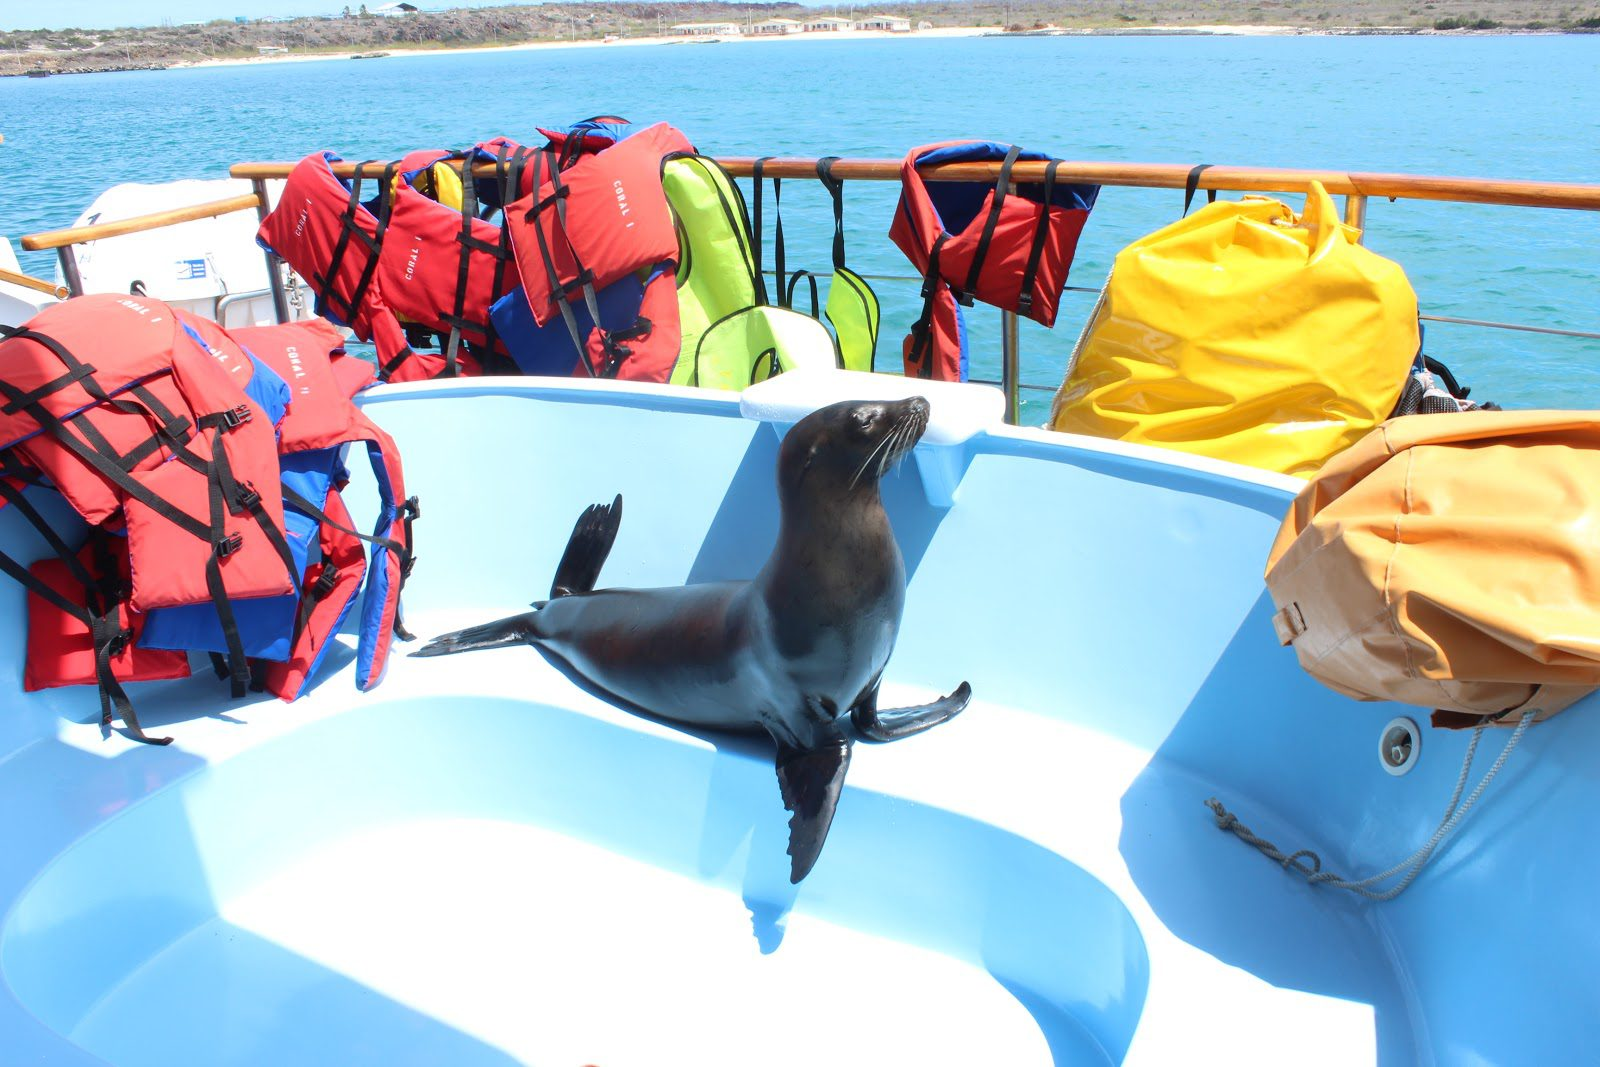 a curious seal sits inside an empty hot tub aboard a Galapagos cruise boat, surrounded by colorful life vests and dry bags.